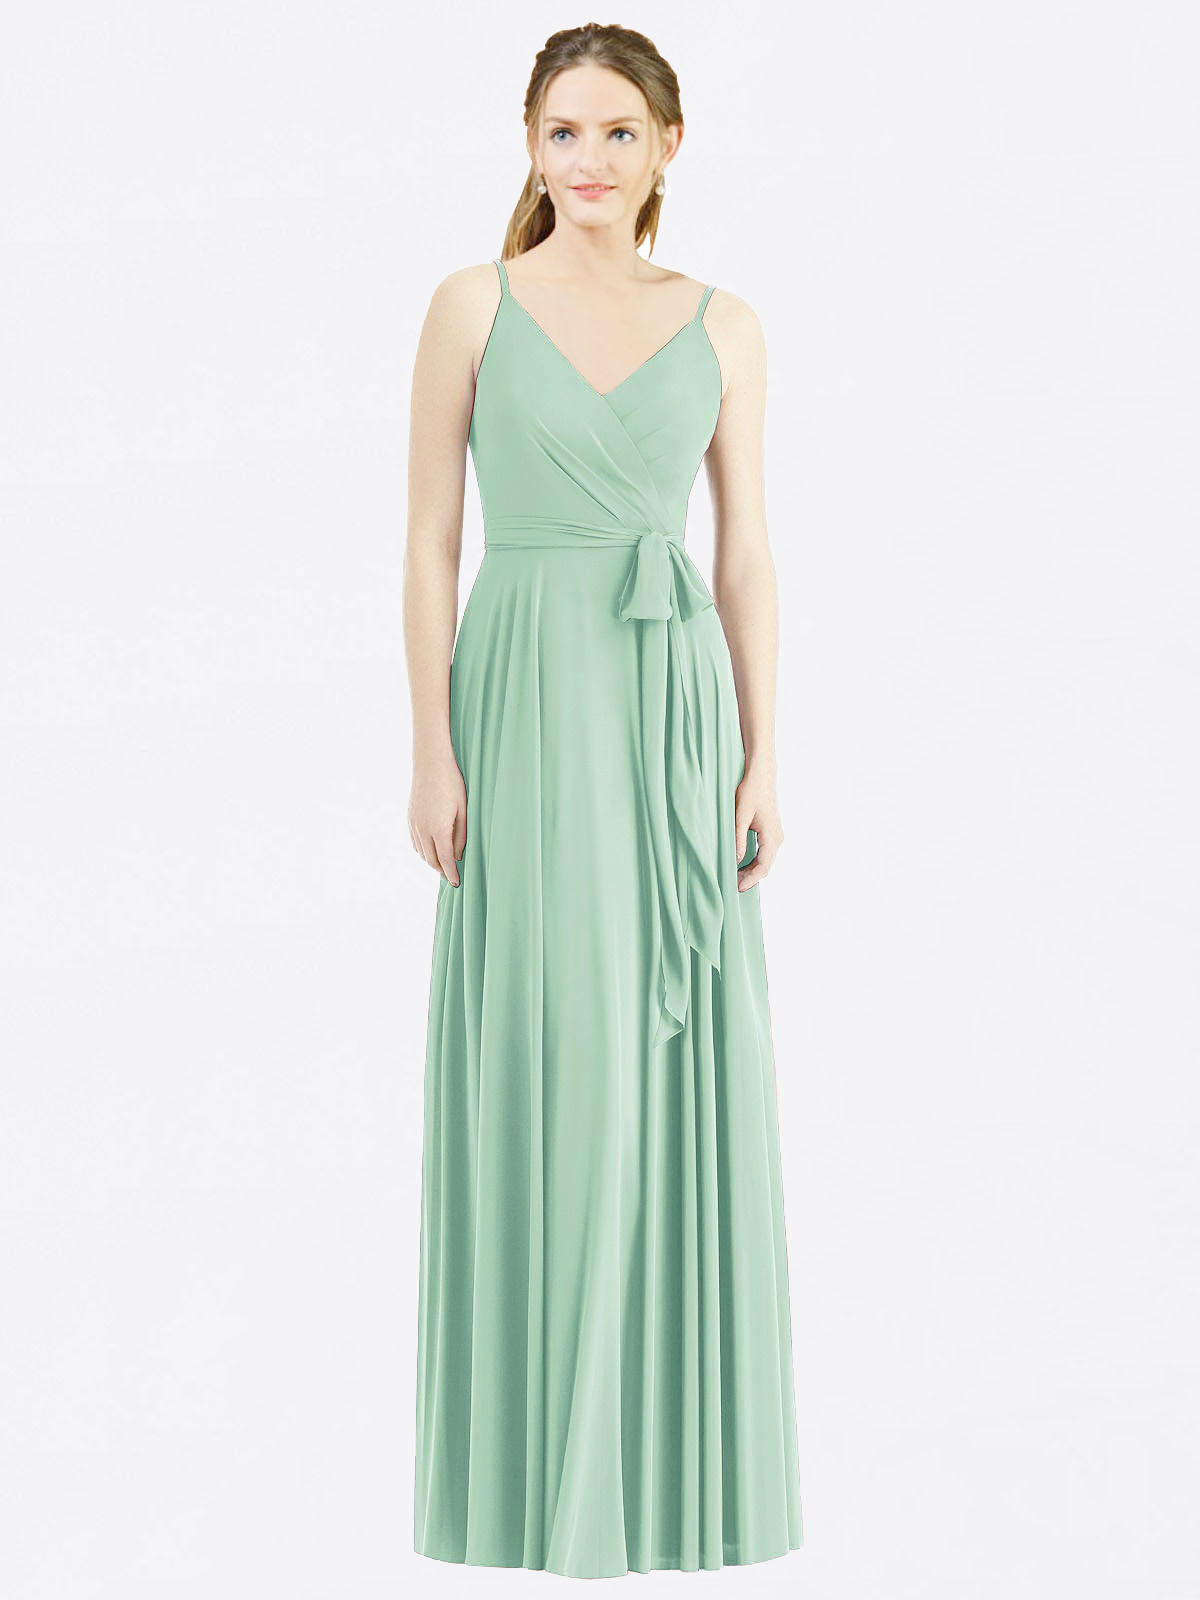 Long A-Line Spaghetti Straps, V-Neck Sleeveless Mint Green Chiffon Bridesmaid Dress Madilyn